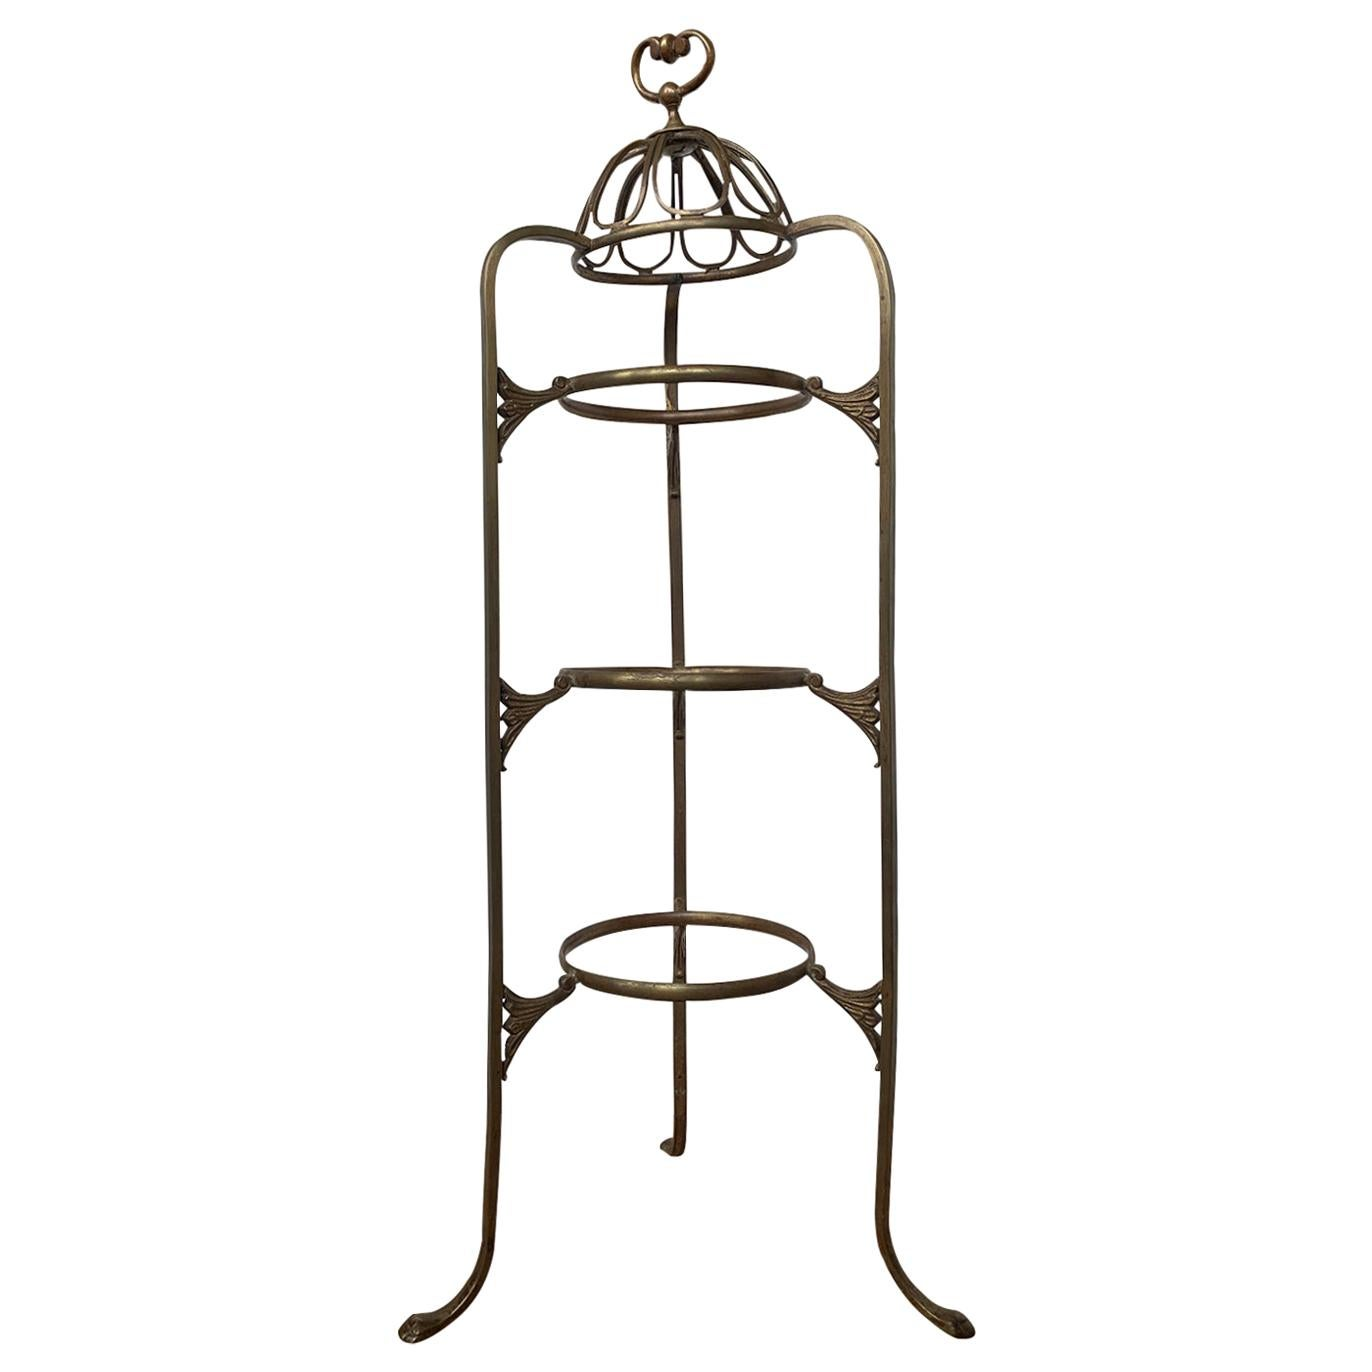 Early 20th Century Brass Tiered Plate Rack or Dessert Stand